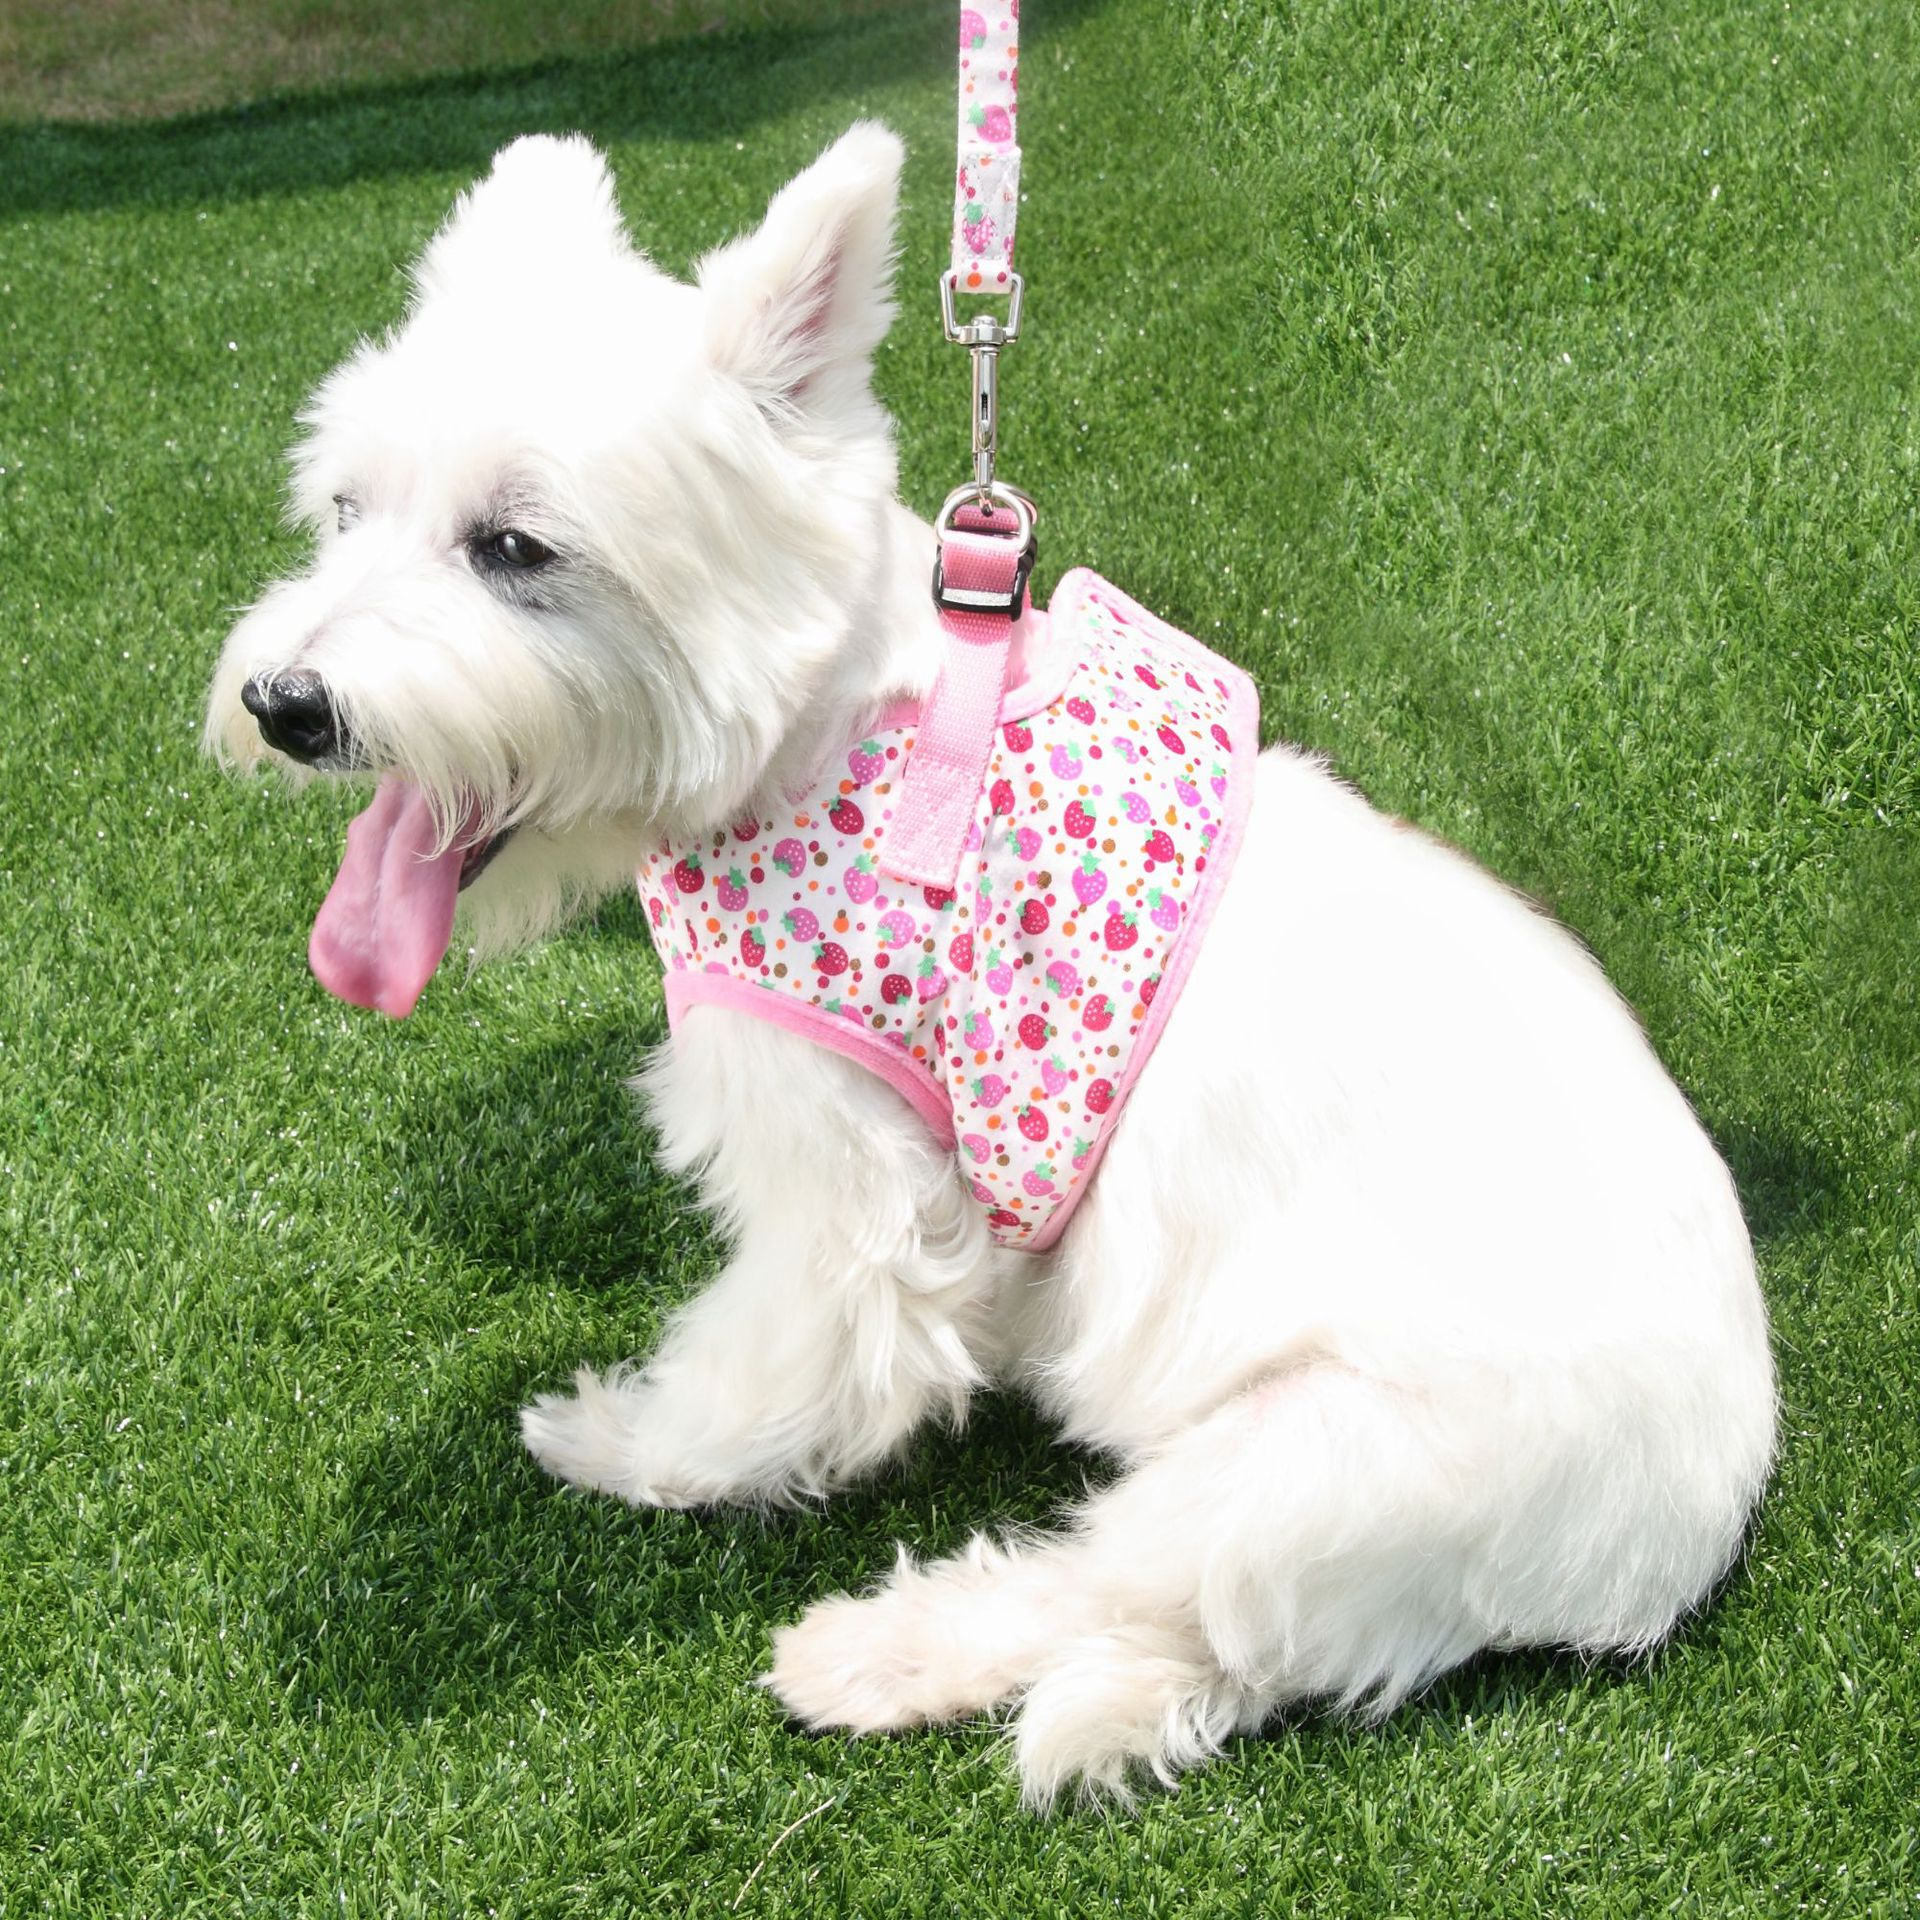 Japan Doogee Cute Strawberry Have Pet's Chest-back With Hand Holding Rope Dog Outdoor Traction Belt